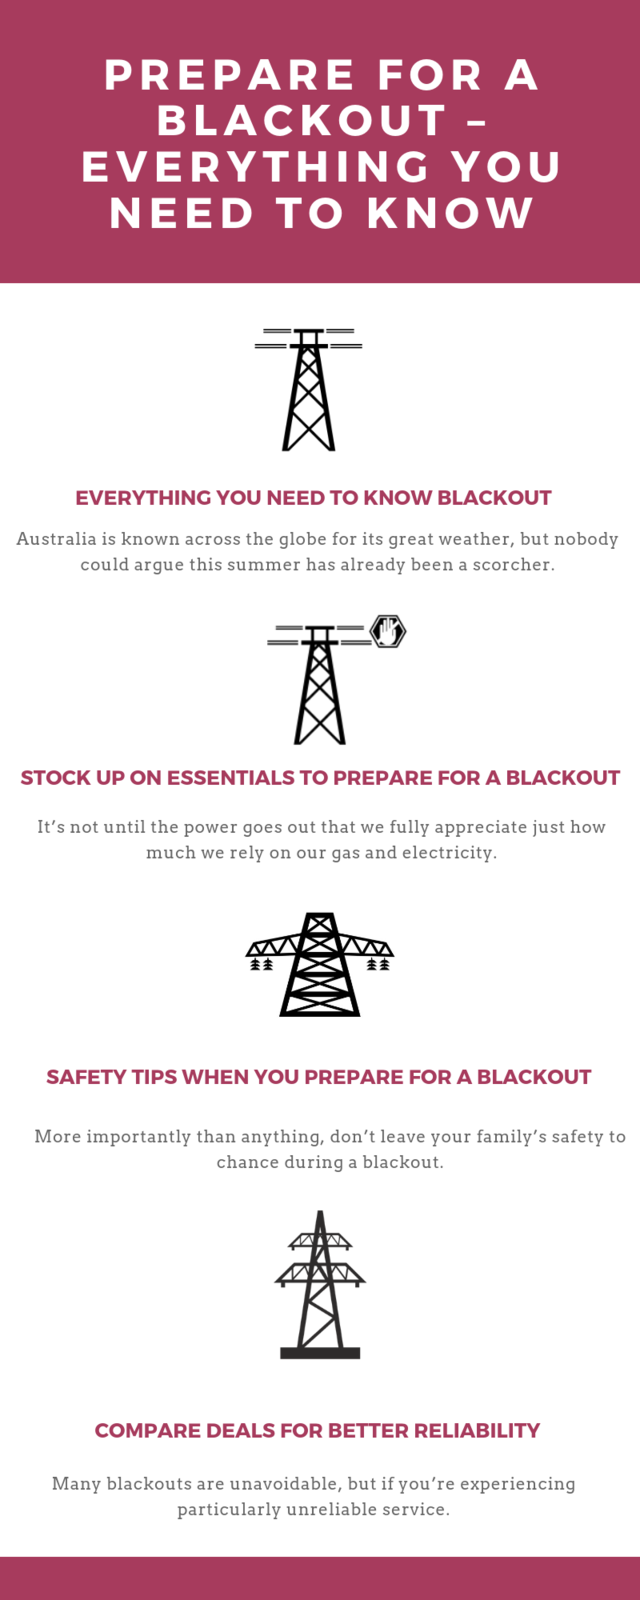 Prepare for a blackout %e2%80%93 everything you need to know